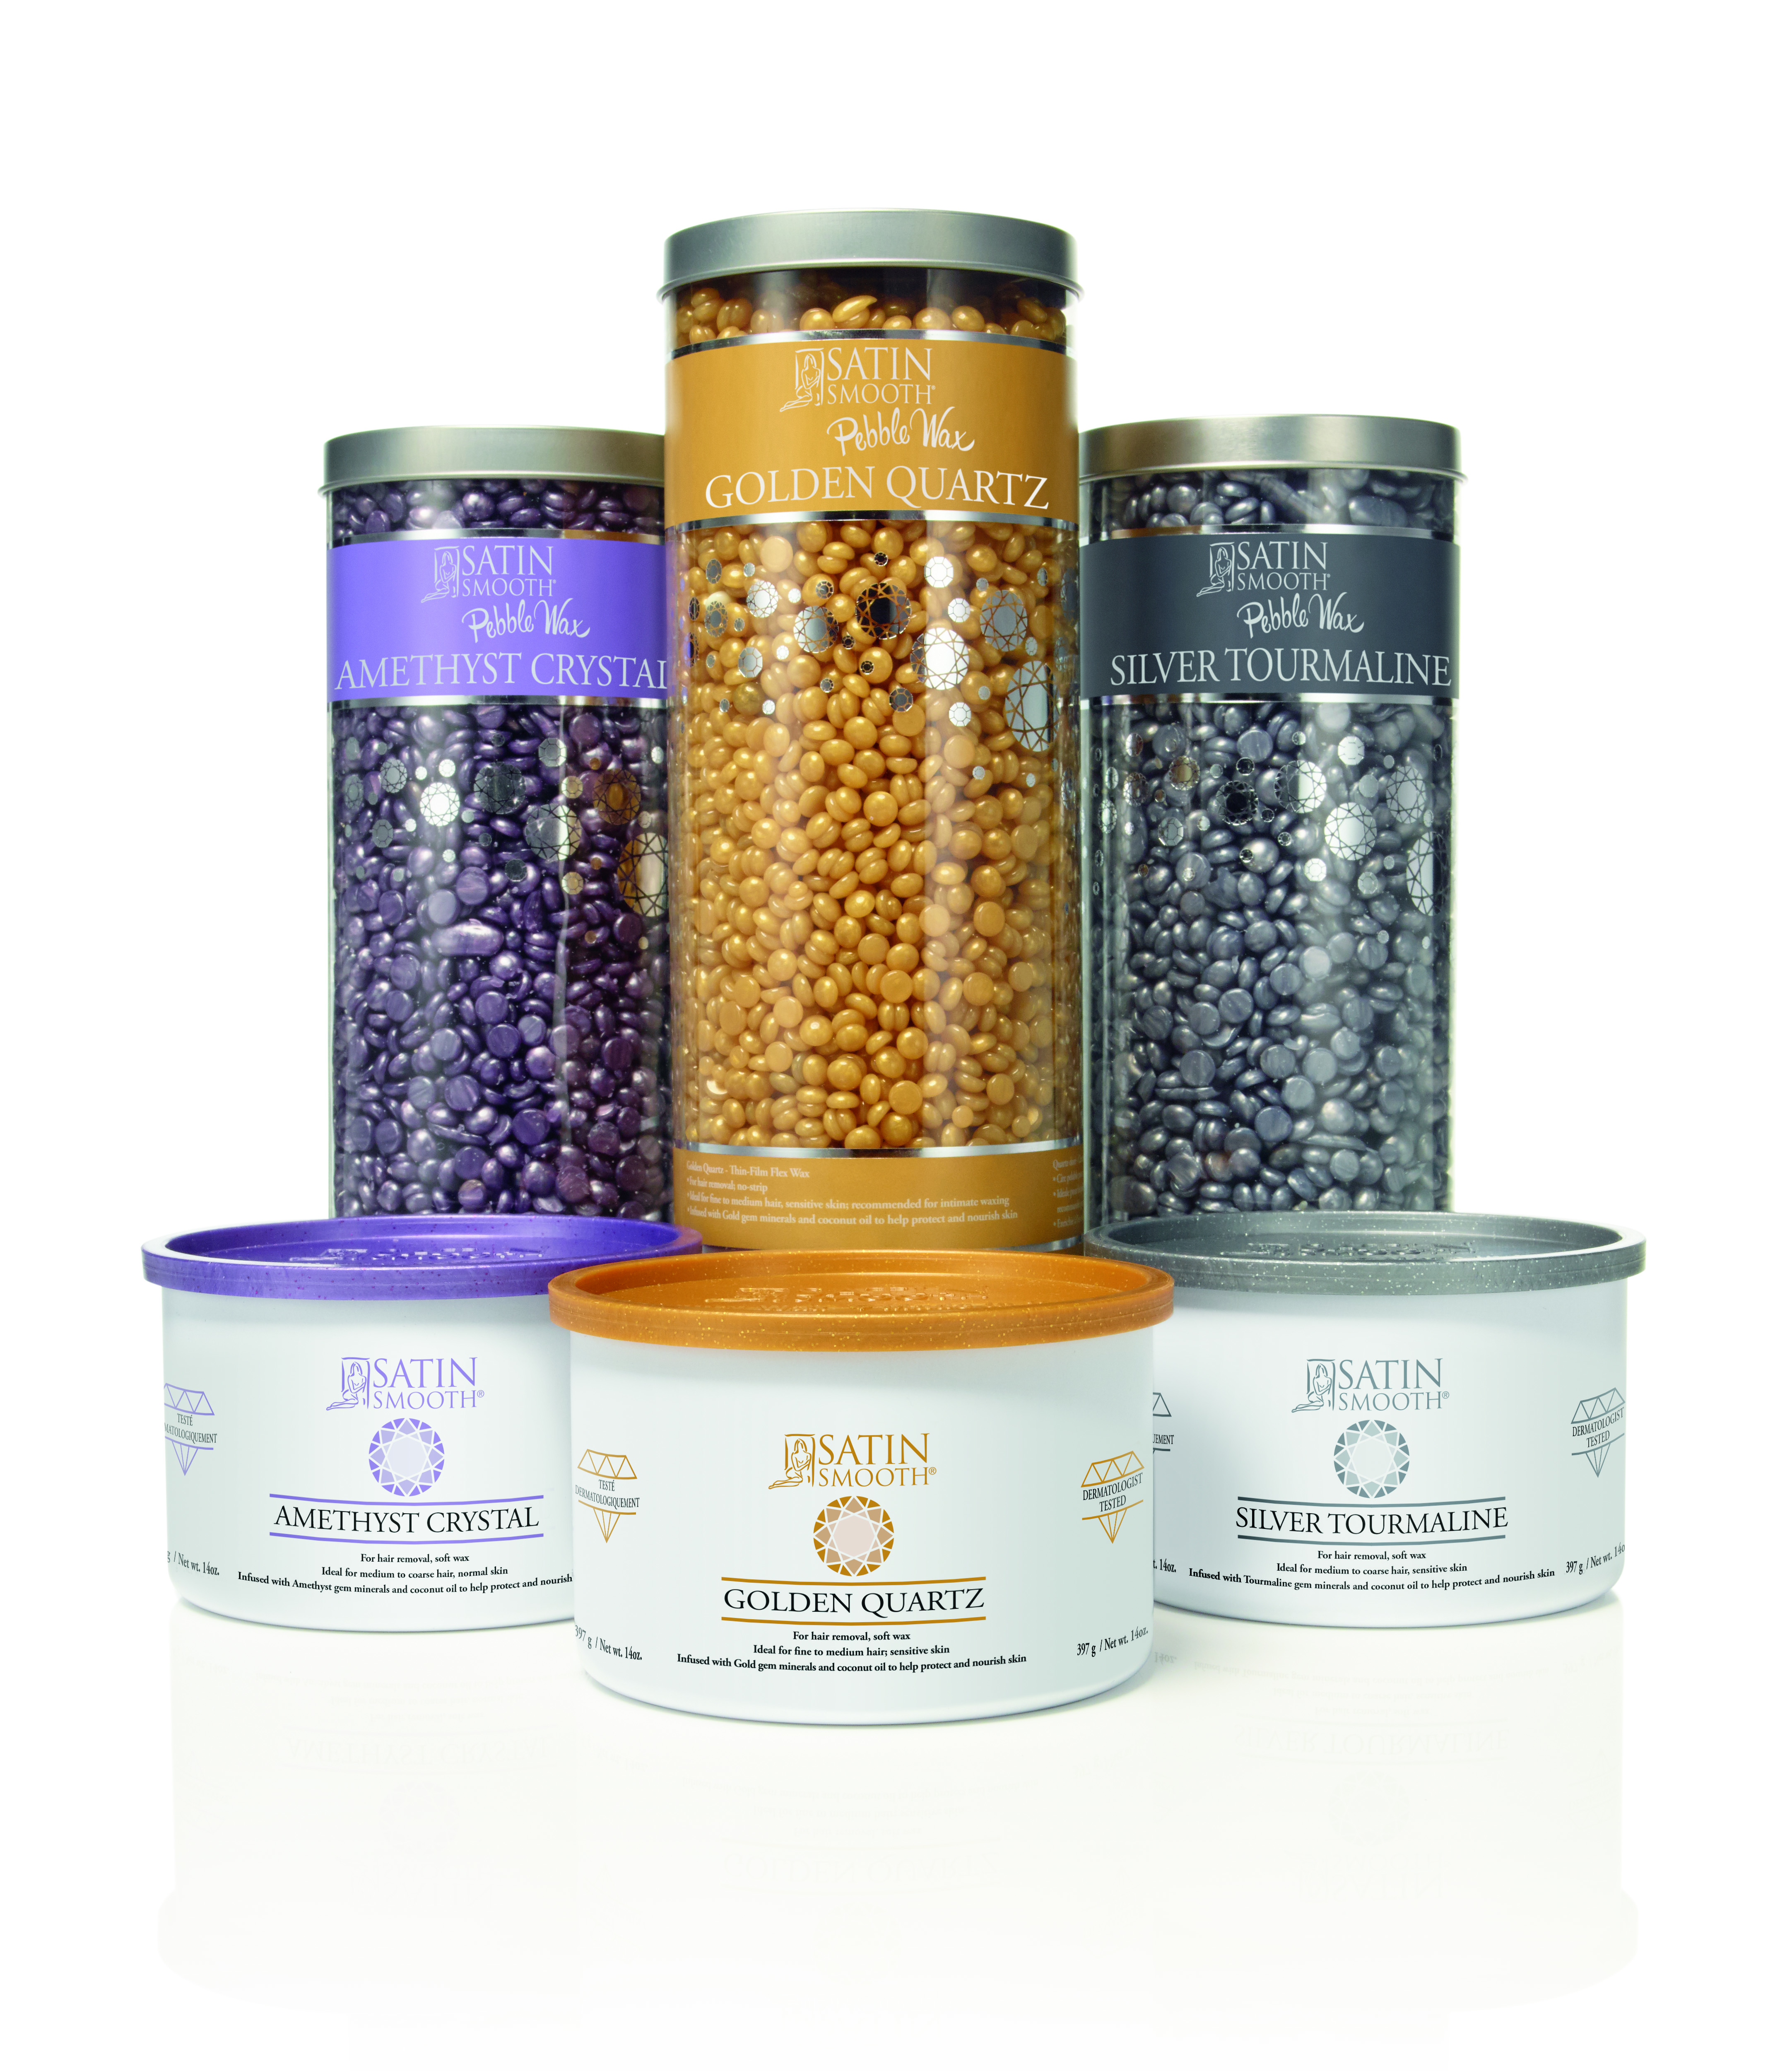 Golden Quartz - Ideal for fine to medium hair, sensitive skin; Amethyst Crystal - Ideal for medium to coarse hair, normal skin; Silver Tourmaline - Ideal for medium to coarse hair, sensitive skin.